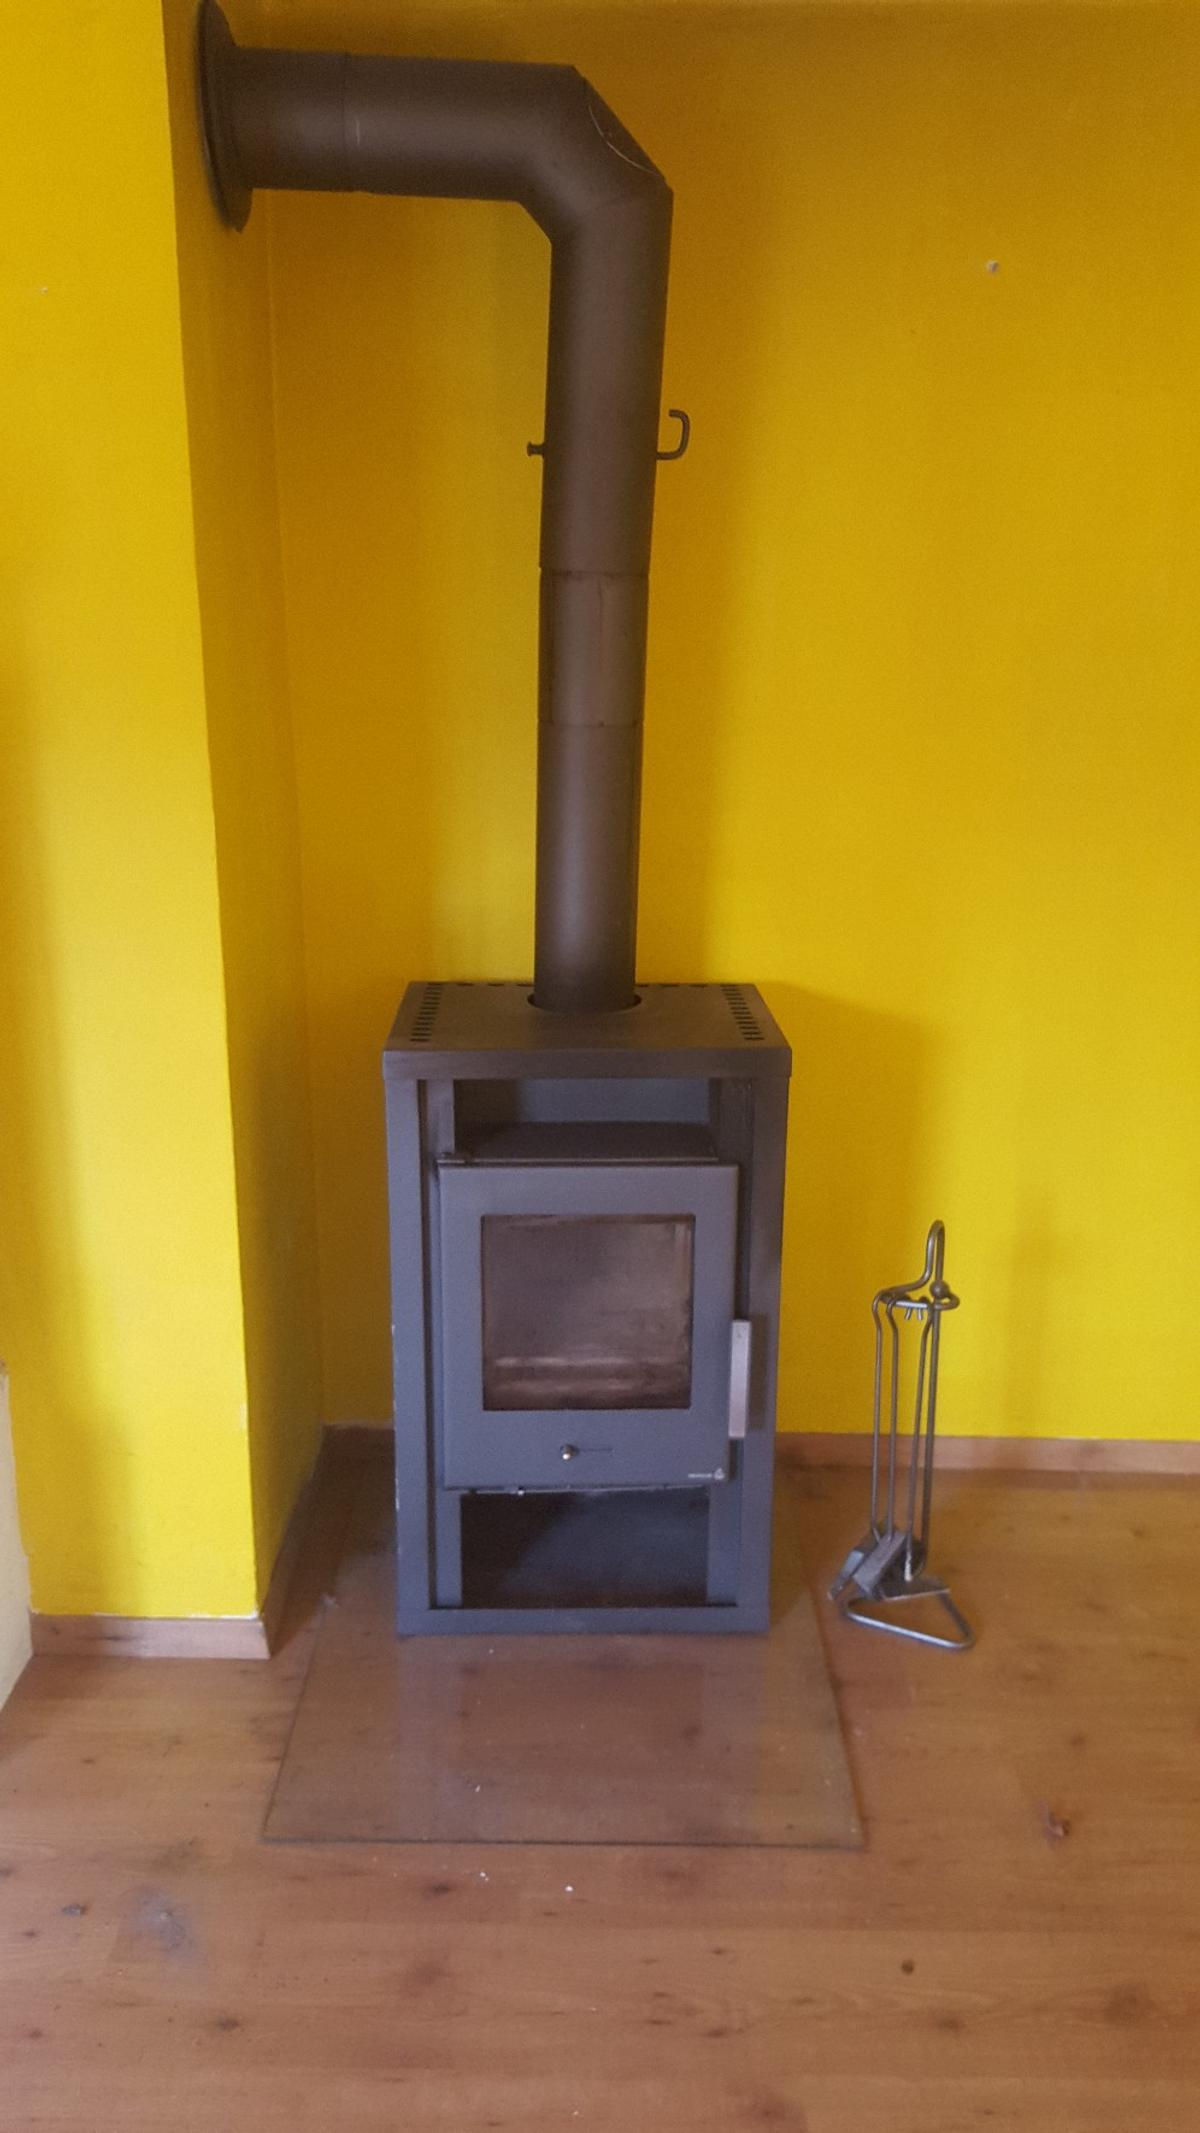 Kleiner Ofen Holzofen In 5162 Obertrum Am See For €150.00 For Sale | Shpock